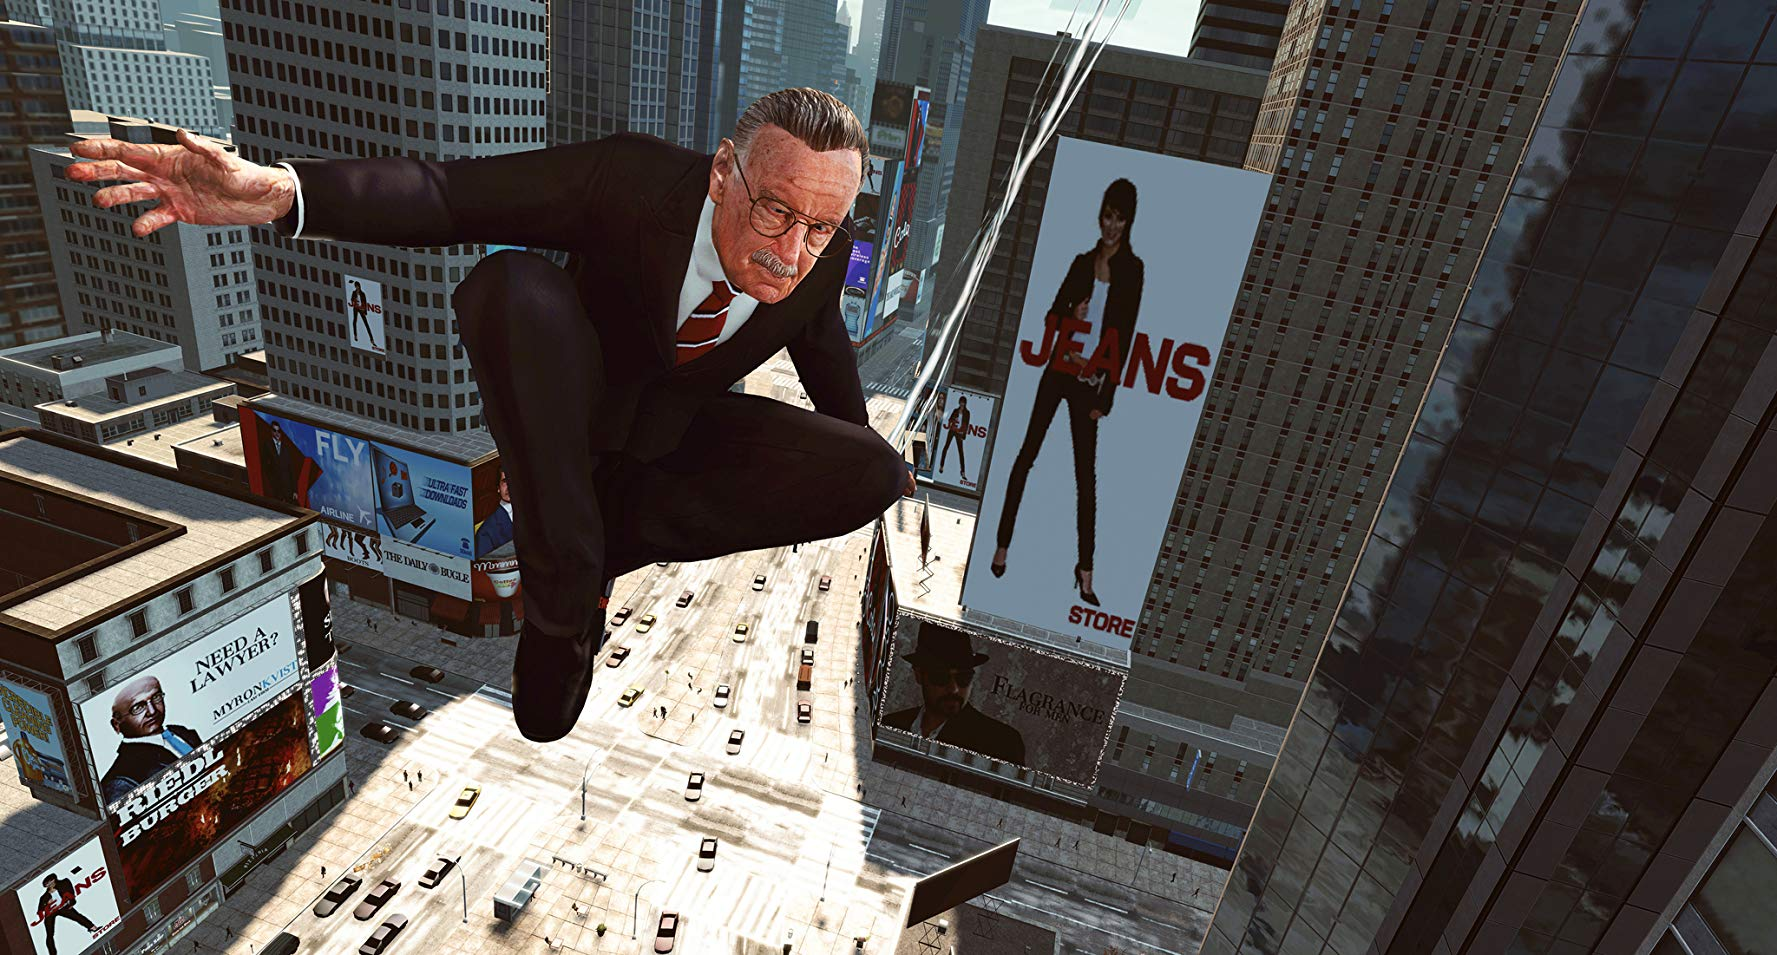 Stan Lee in The Amazing Spider-Man video game